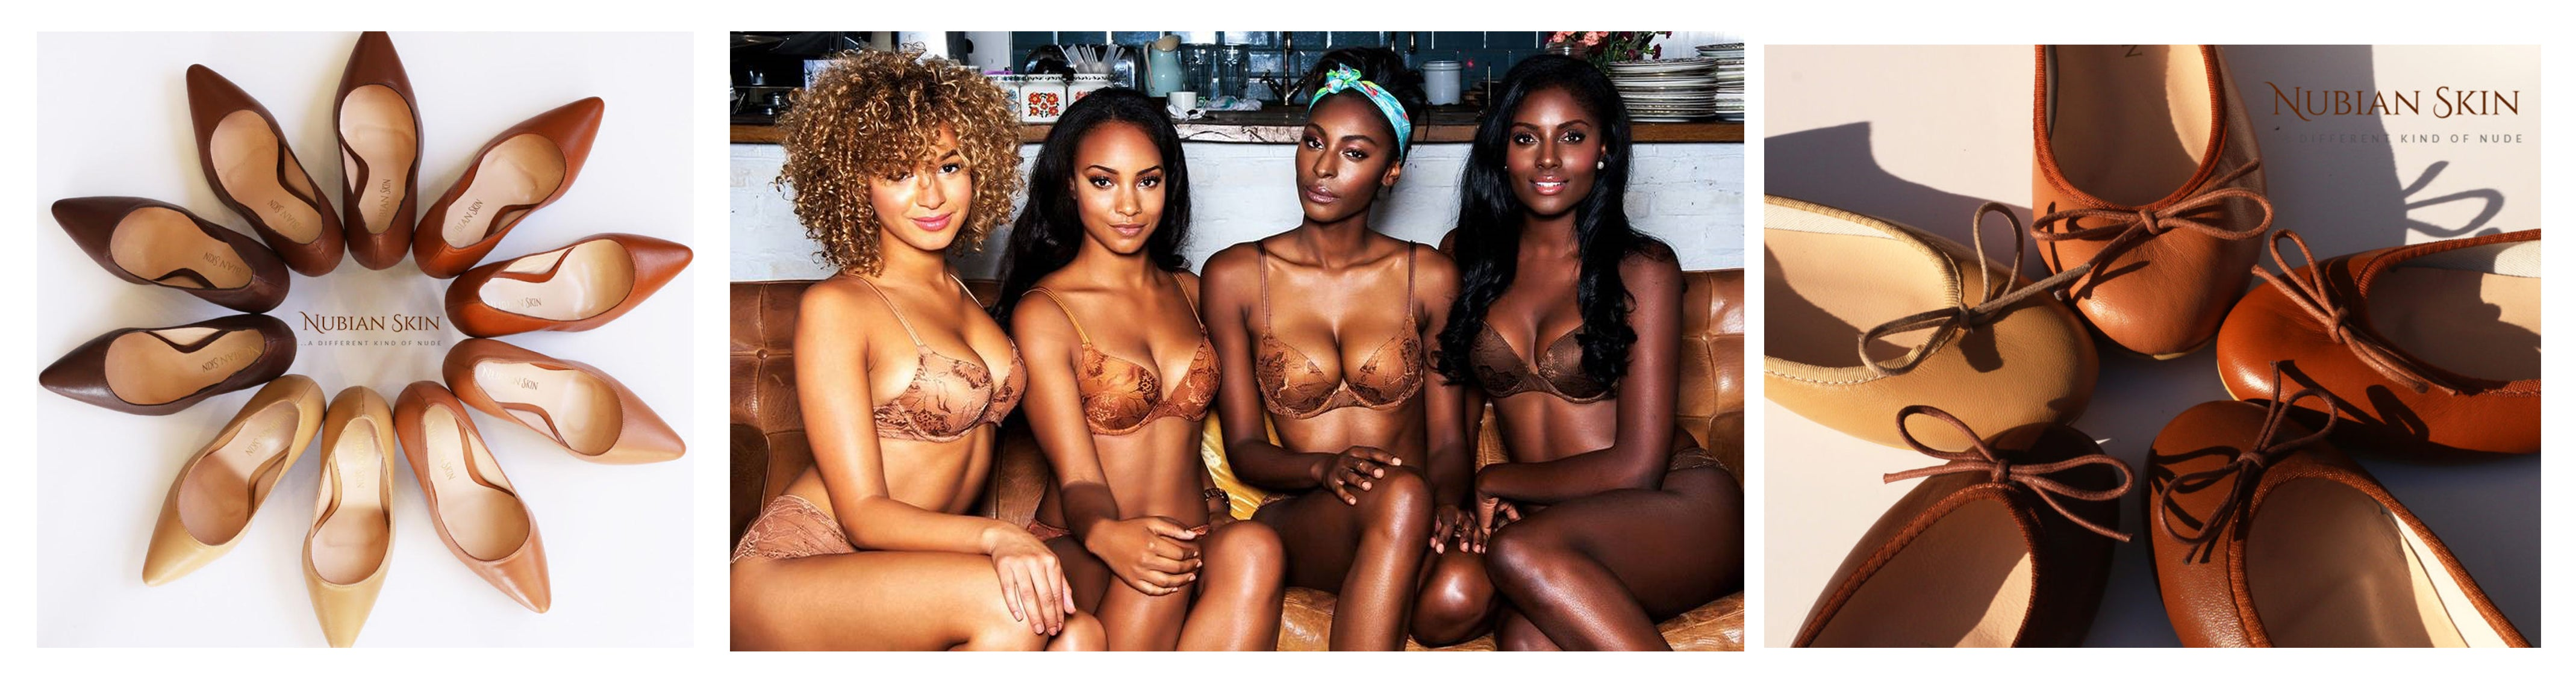 04b51c40d6b Nubian Skin  An Interview With CEO Ade Hassan